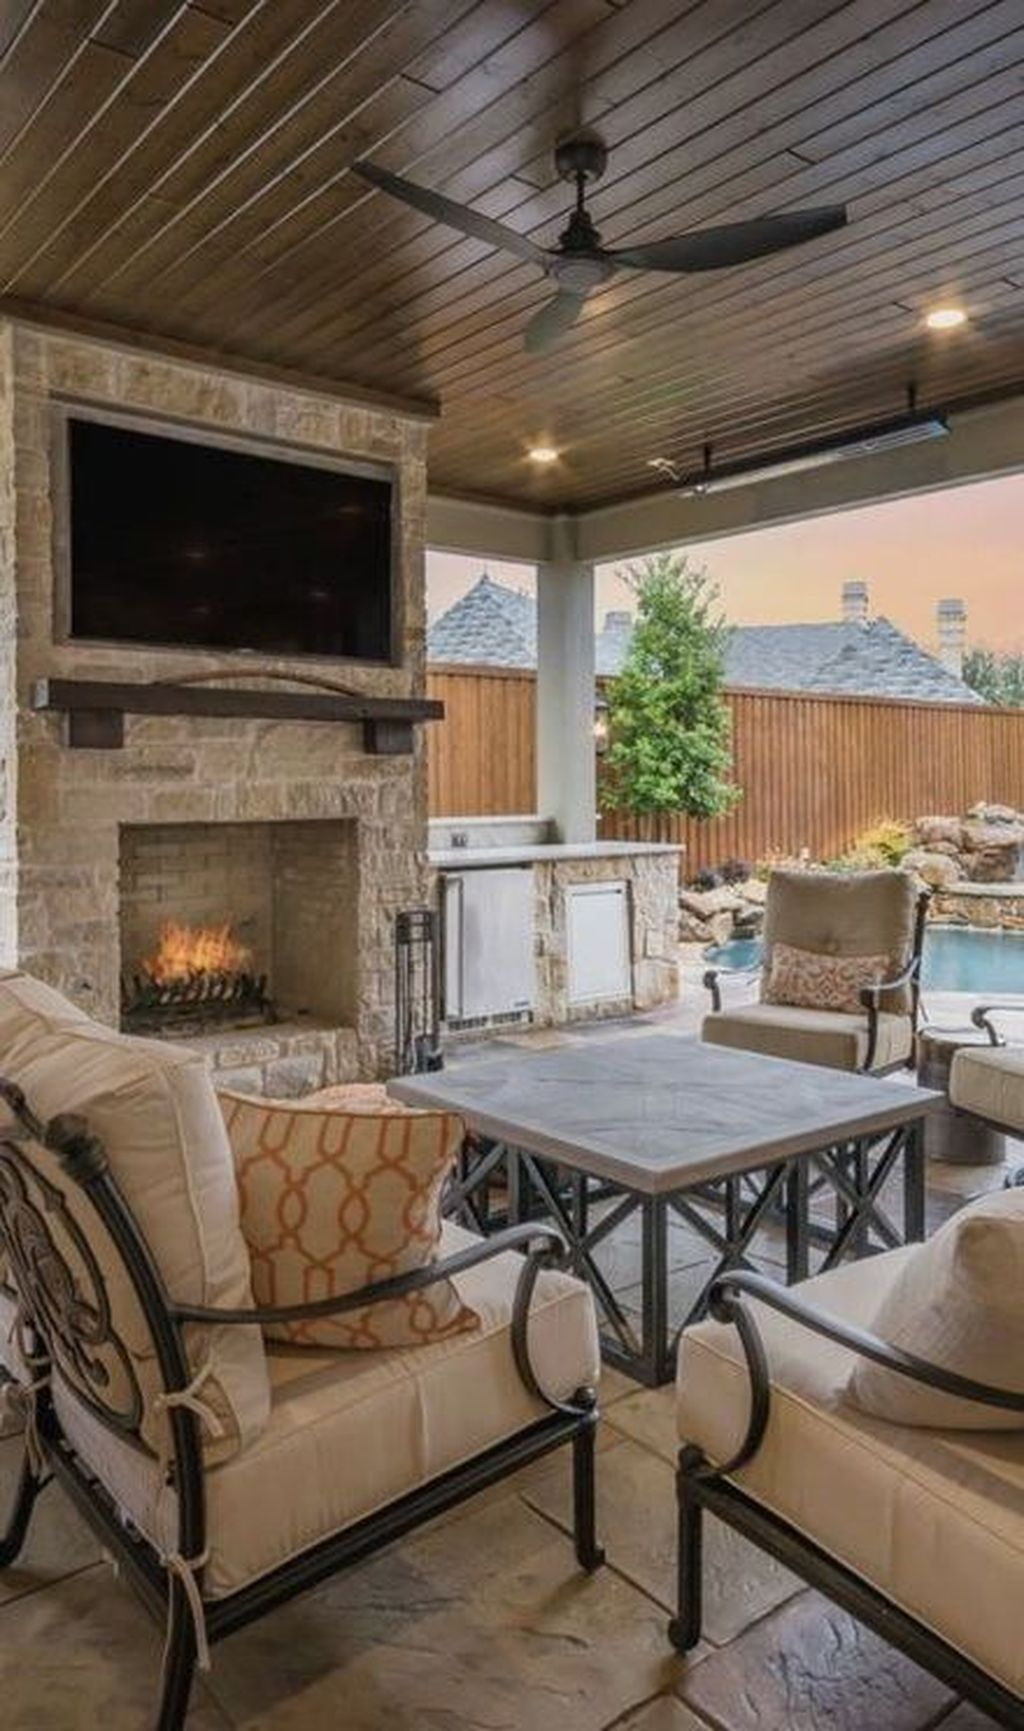 Unordinary Outdoor Living Room Design Ideas To Have Asap 14